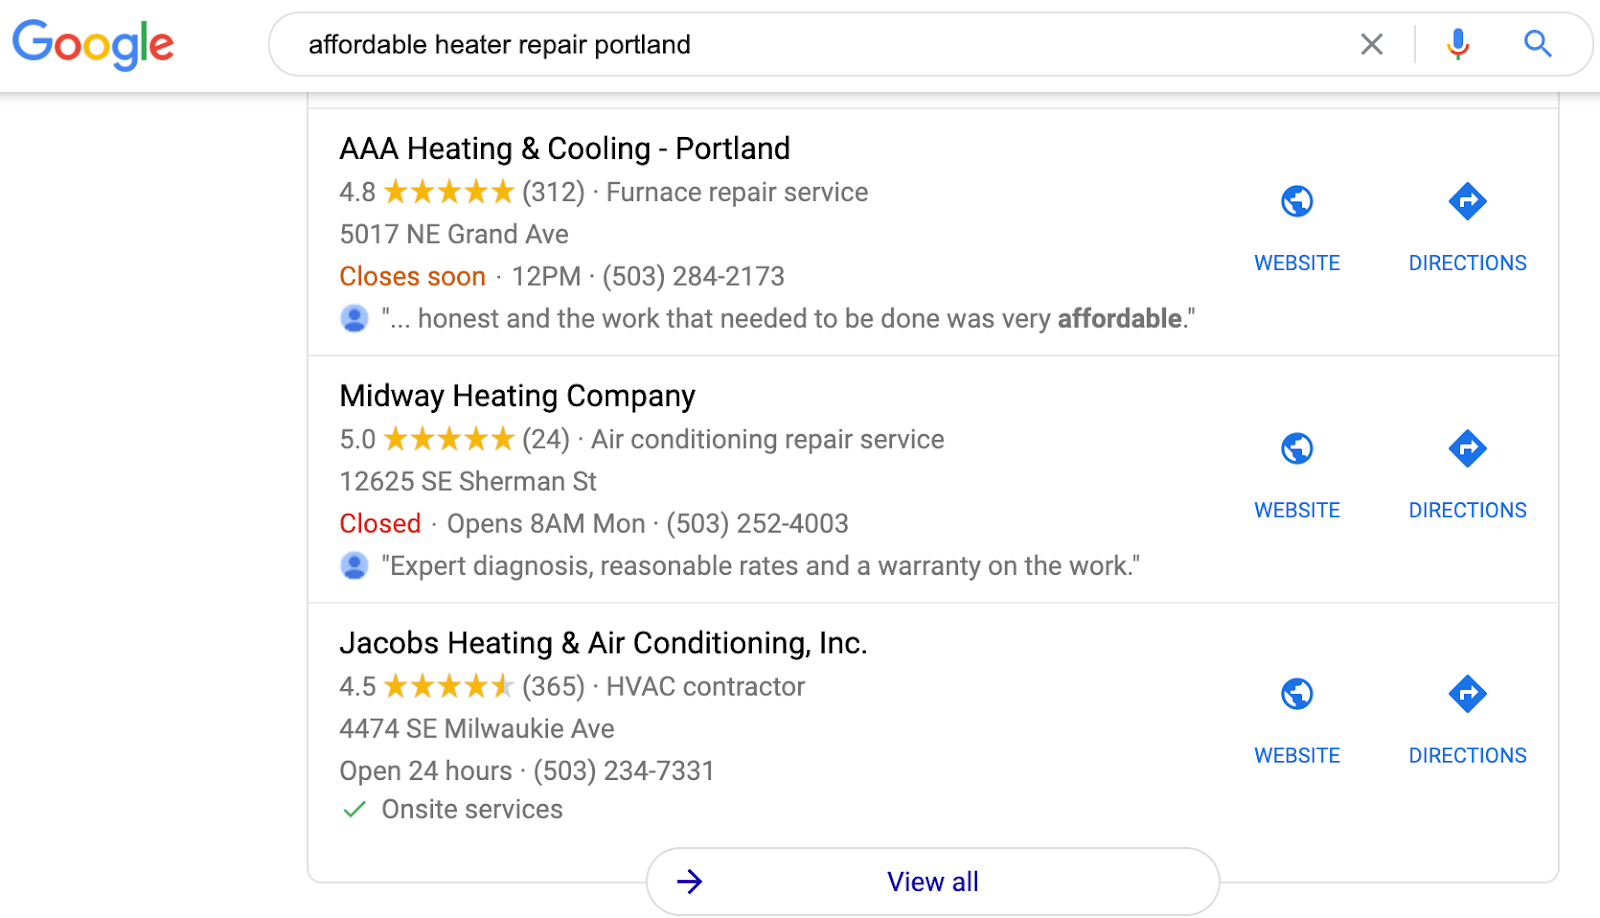 affordable heater repair portland map pack example